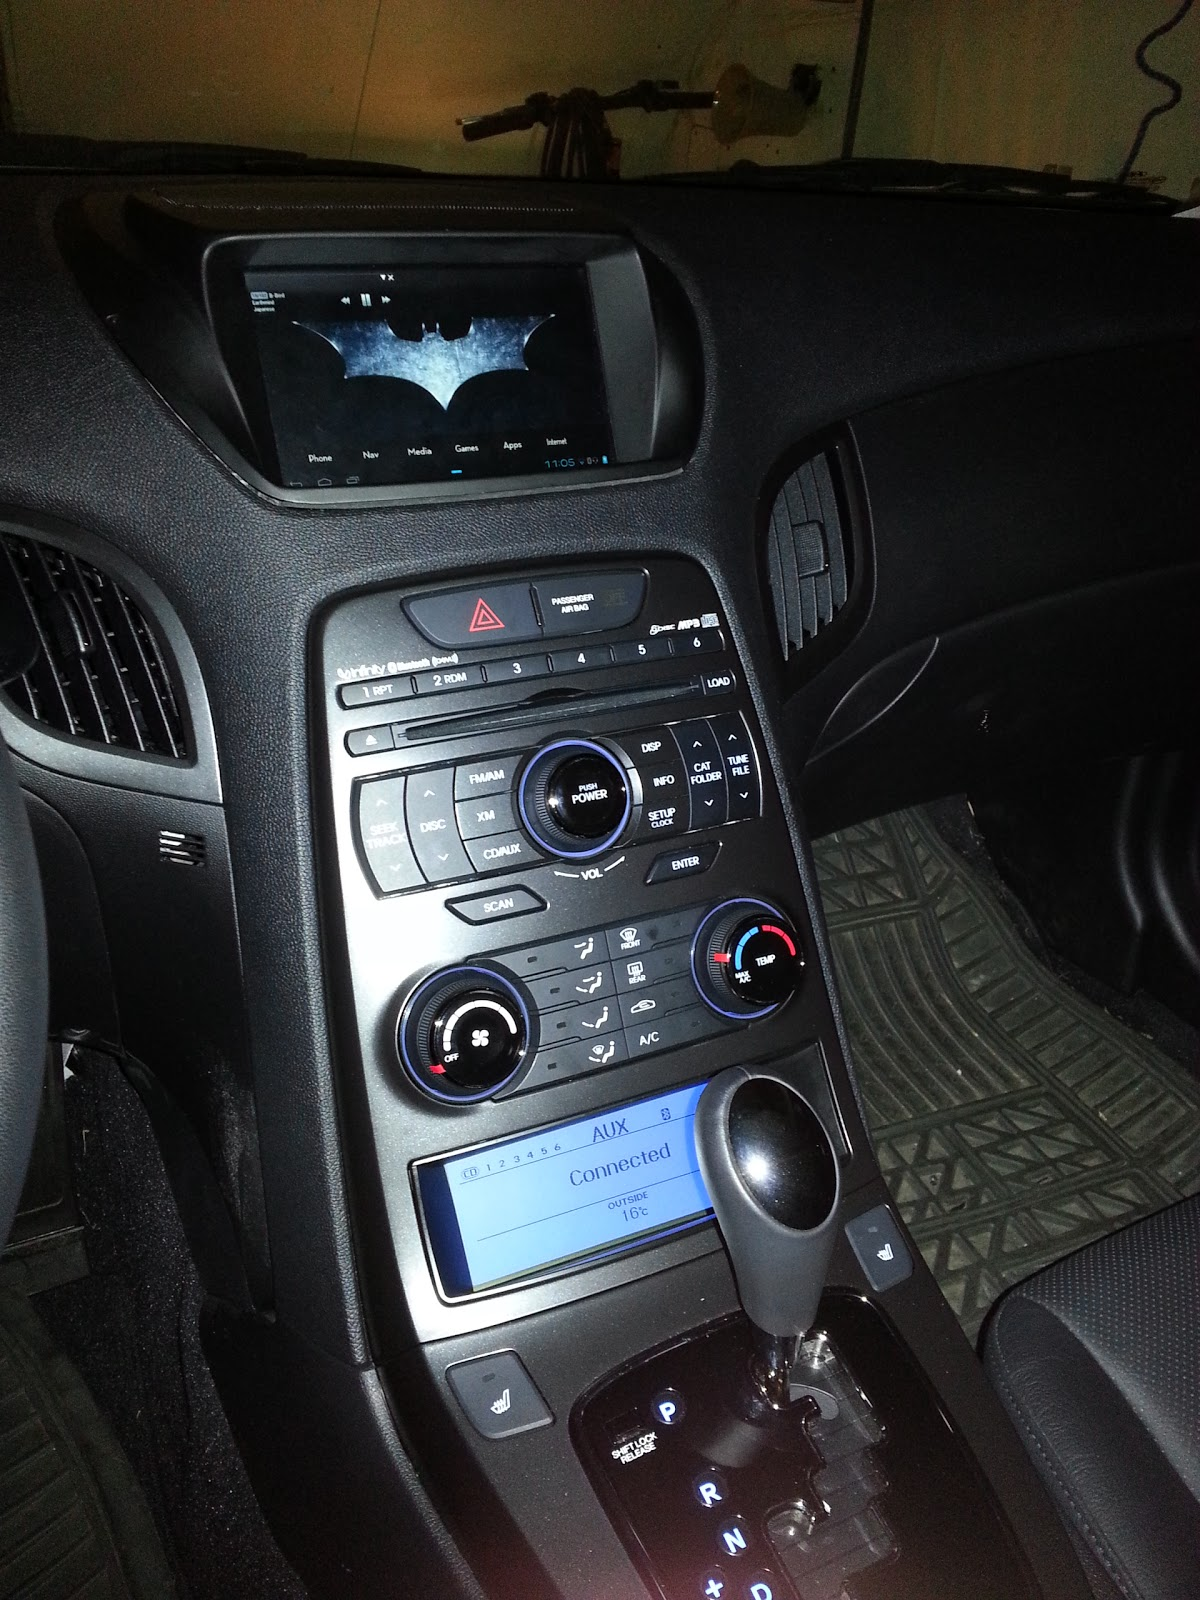 Dereks projects diy installing a tablet in a hyundai genesis coupe while the 20t version of the genesis coupe doesnt have built in nav there was a mount for a 7 inch gps or tablet designed to fit on the dash and make it greentooth Choice Image